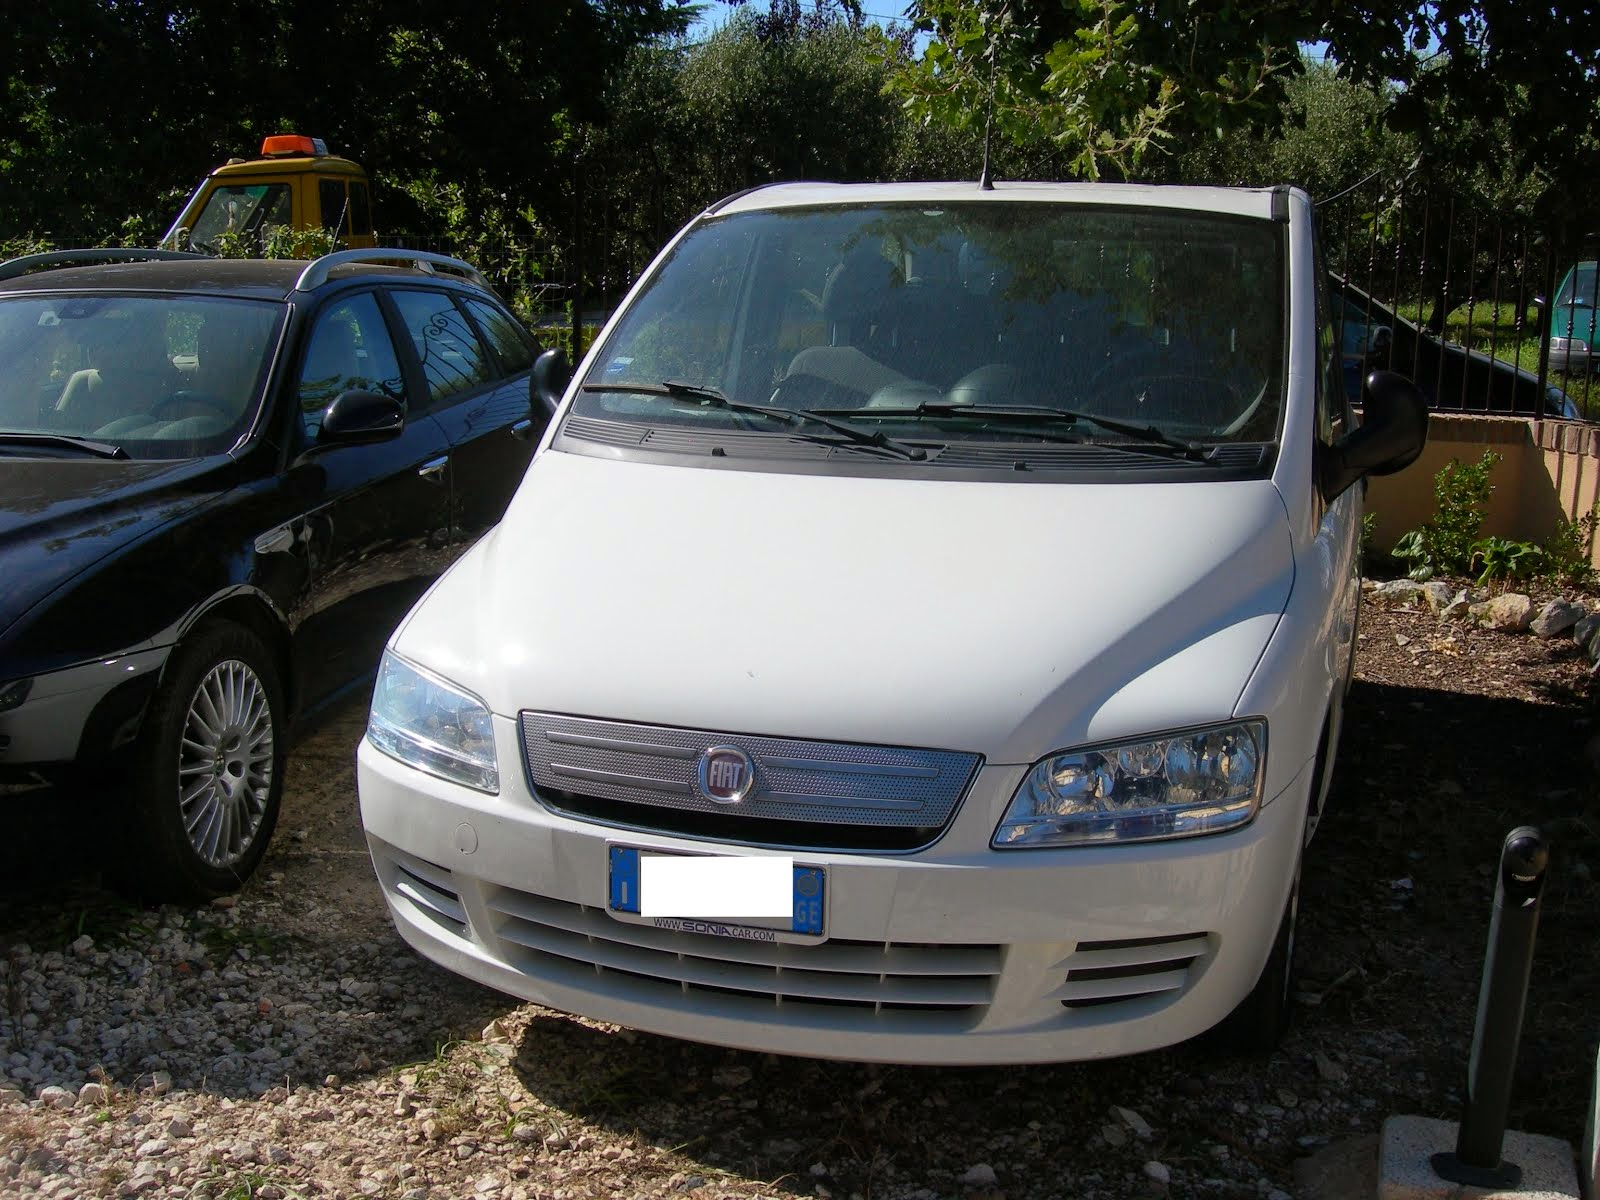 Fiat Multipla 1.6 Natural Power Metano 2008 80.0000 km mod.dinamyc 7.500,00 euro